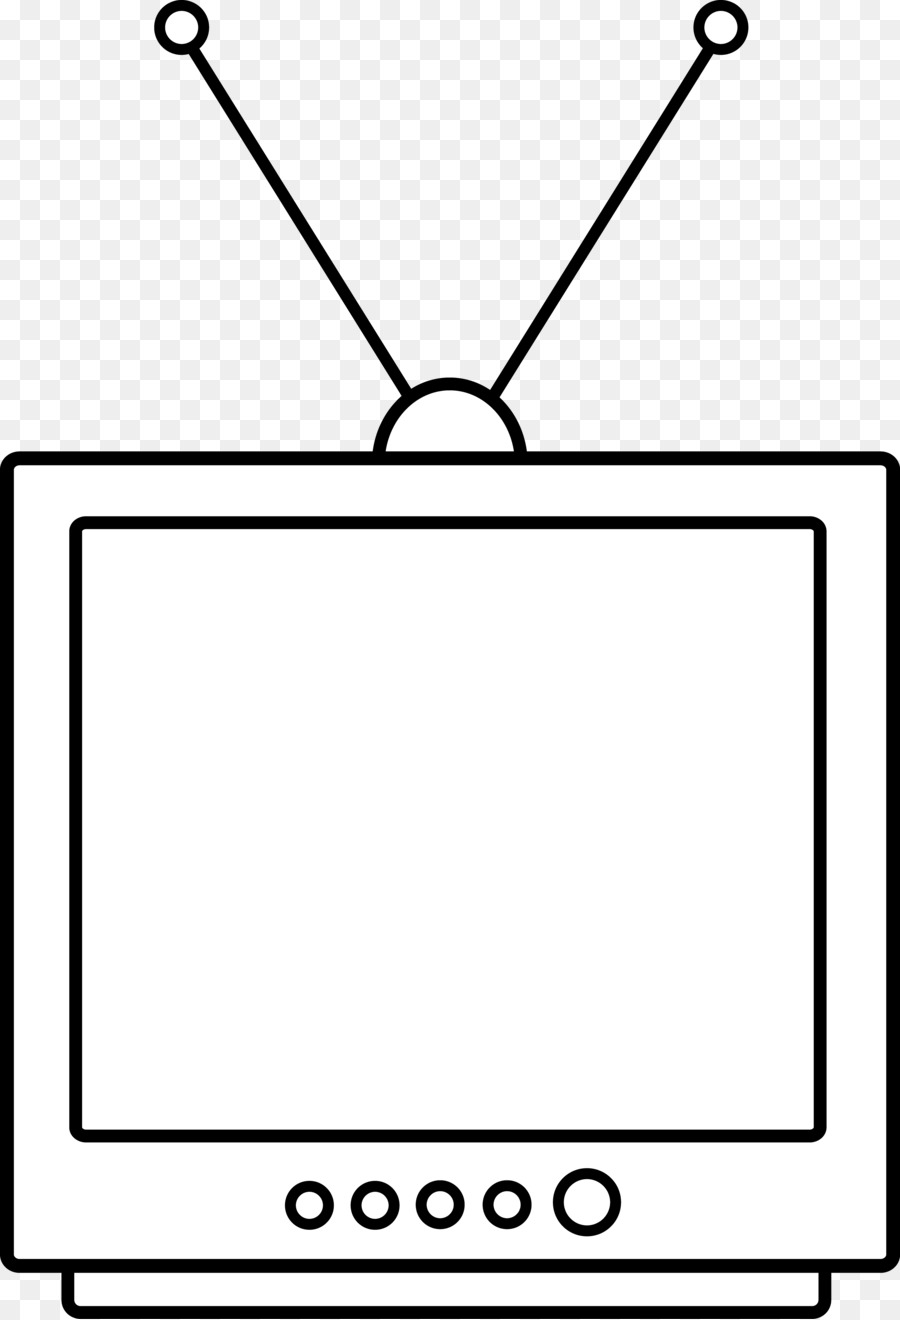 Television black and white clipart image freeuse library Black Line Background clipart - Television, Graphics, White ... image freeuse library